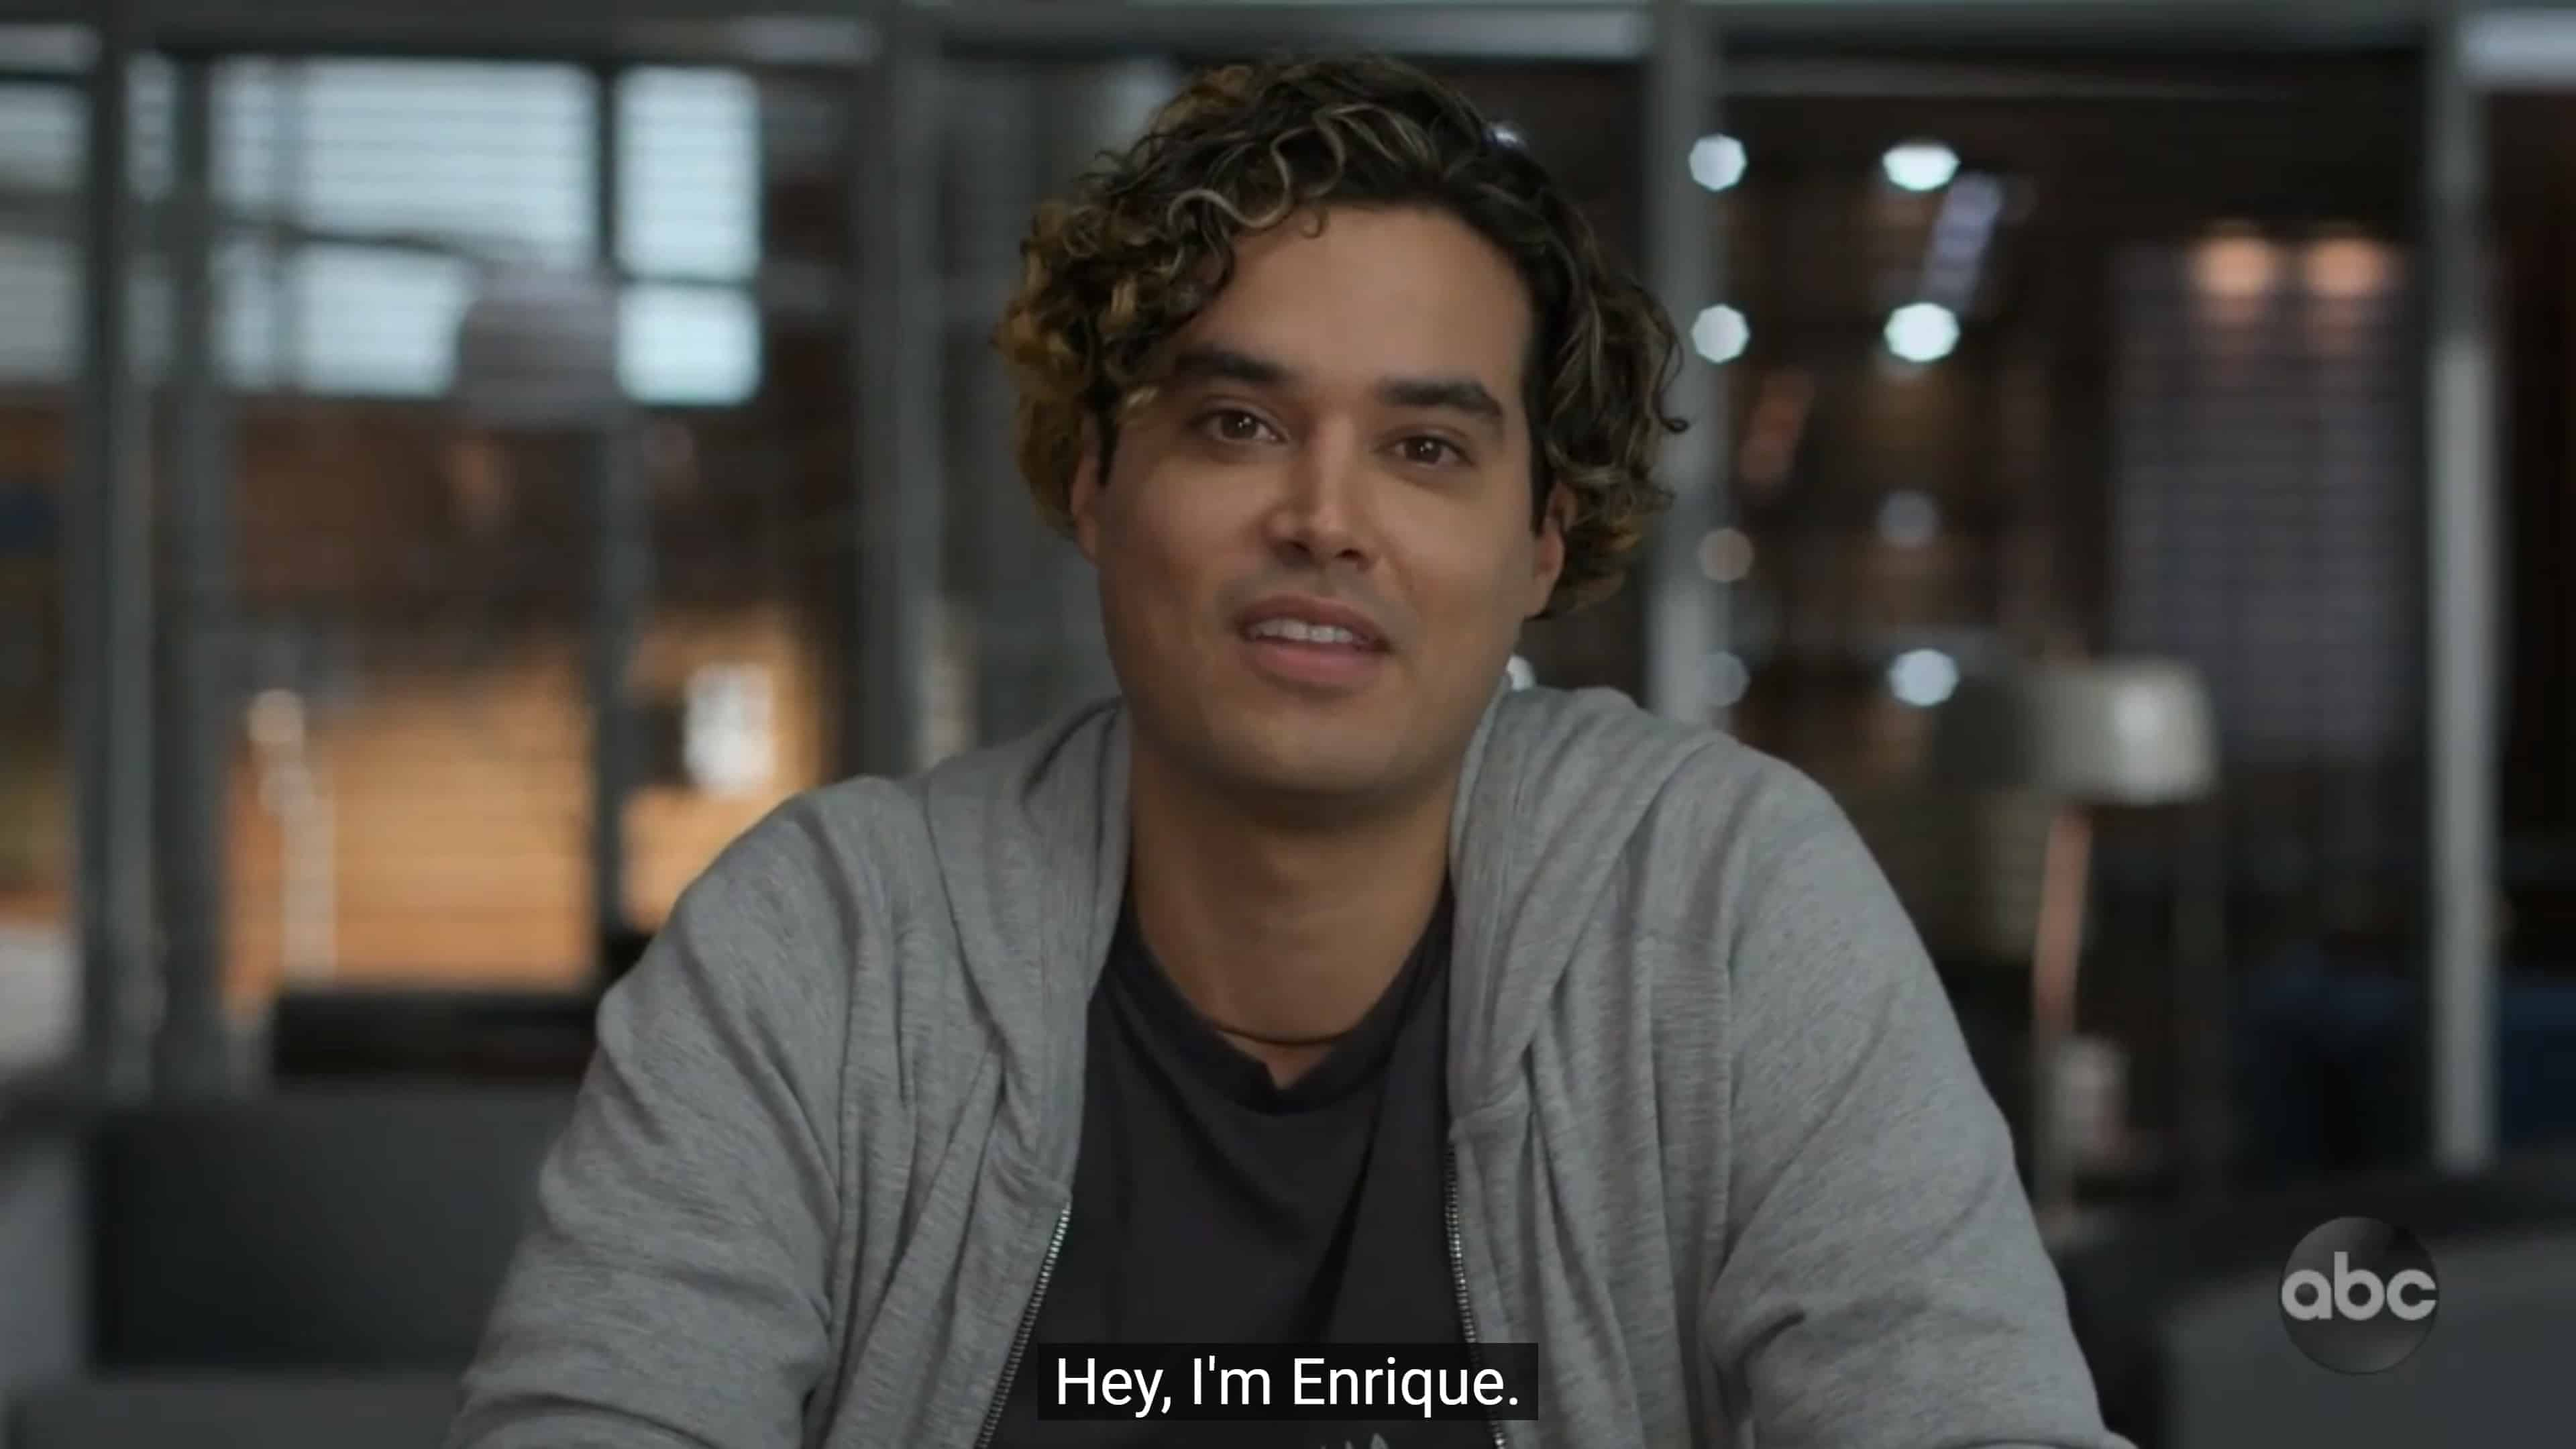 Enrique (Brian Marc) during his interview with Claire